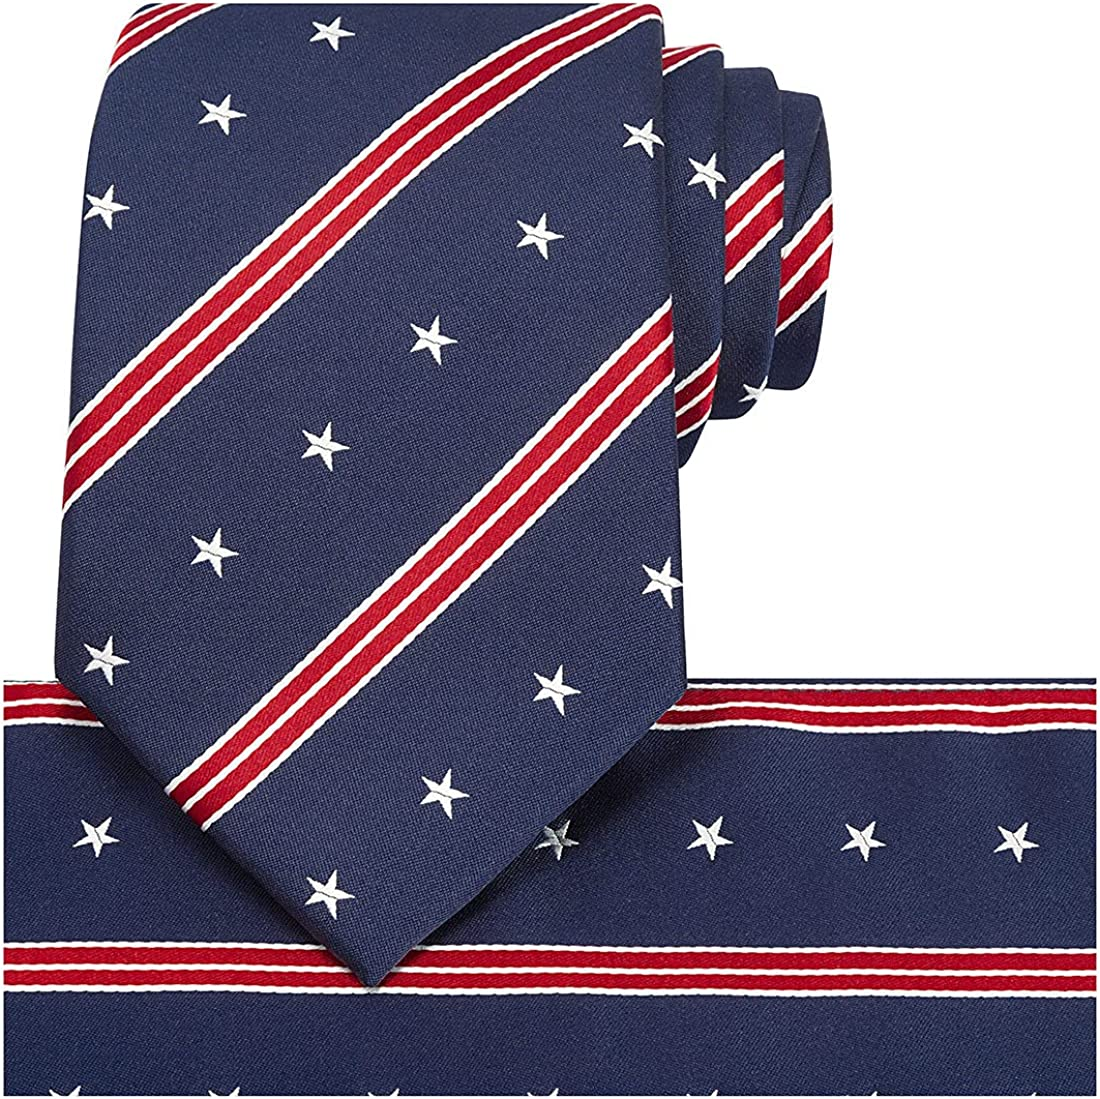 KissTies 100% Silk Tie US Flag Patriotic Magnetic + Animer and price revision Directly managed store Gift Necktie